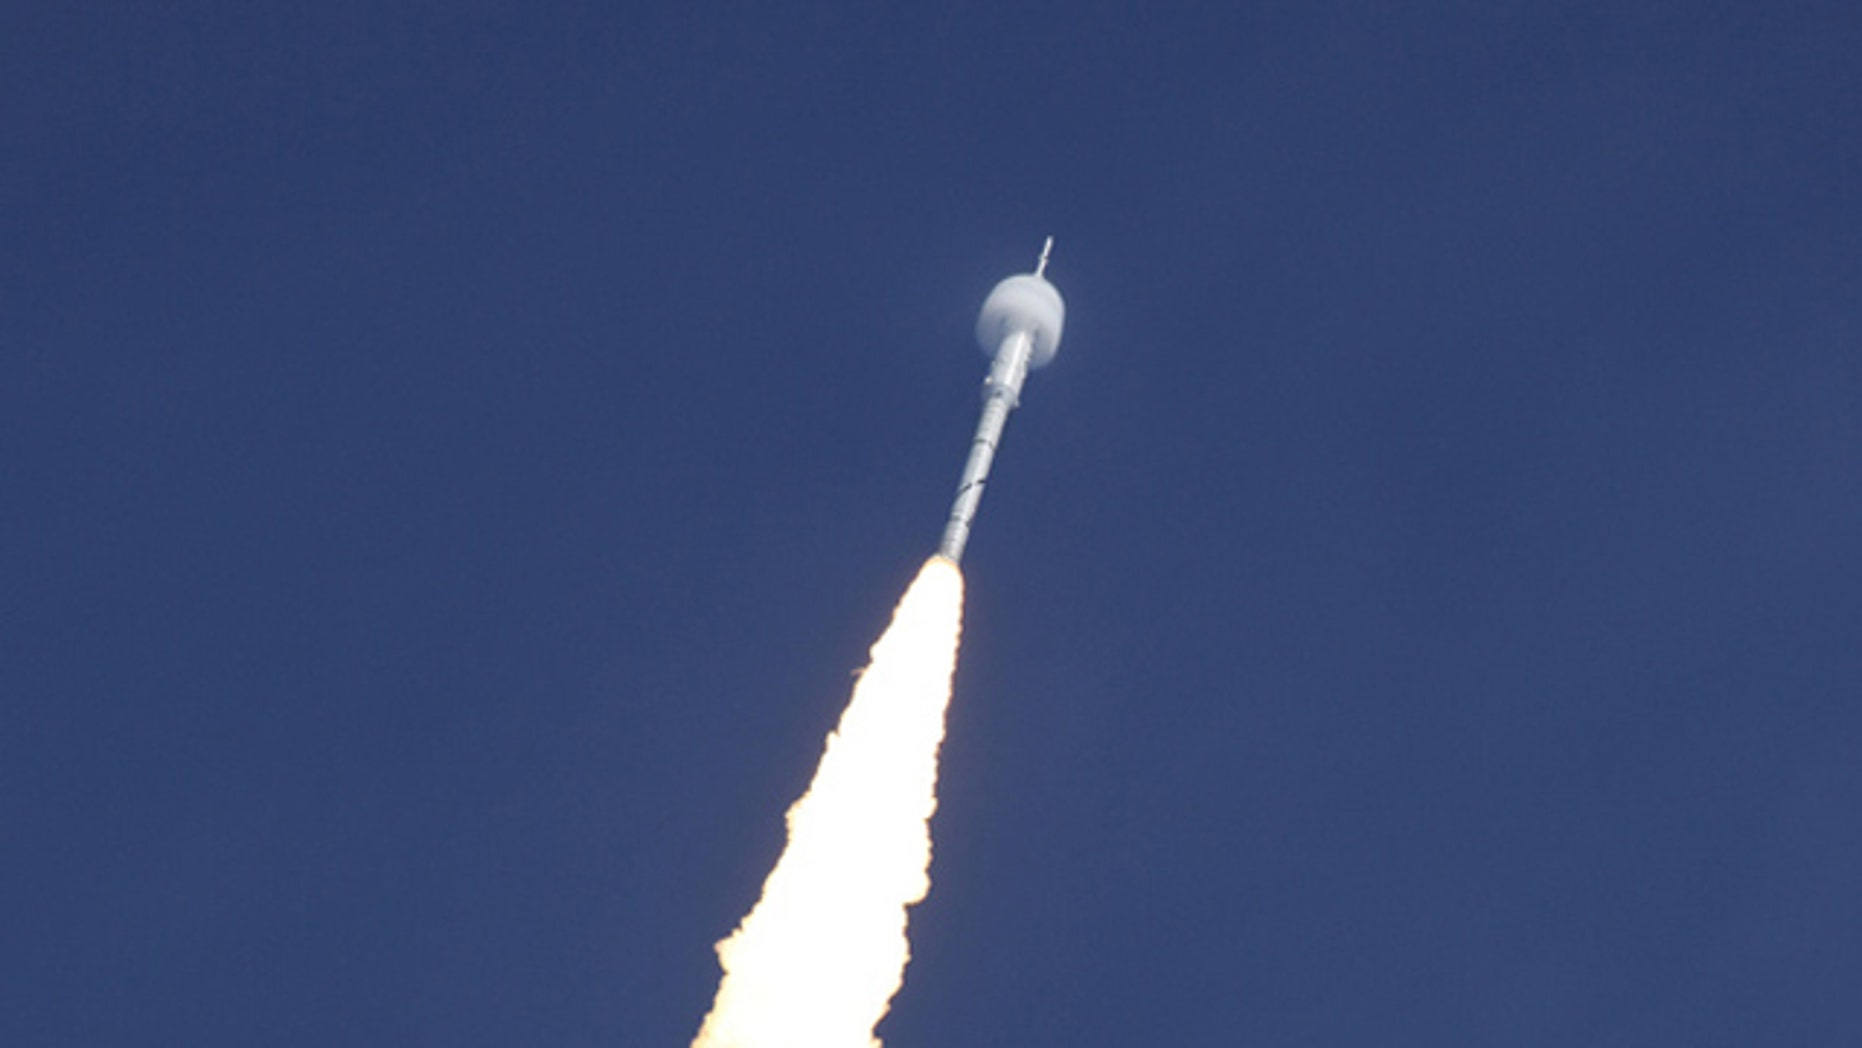 A bow shock forms around the Ares I-X test rocket traveling at supersonic speed during its Oct. 28, 2009 launch from the Kennedy Space Center, Fla.